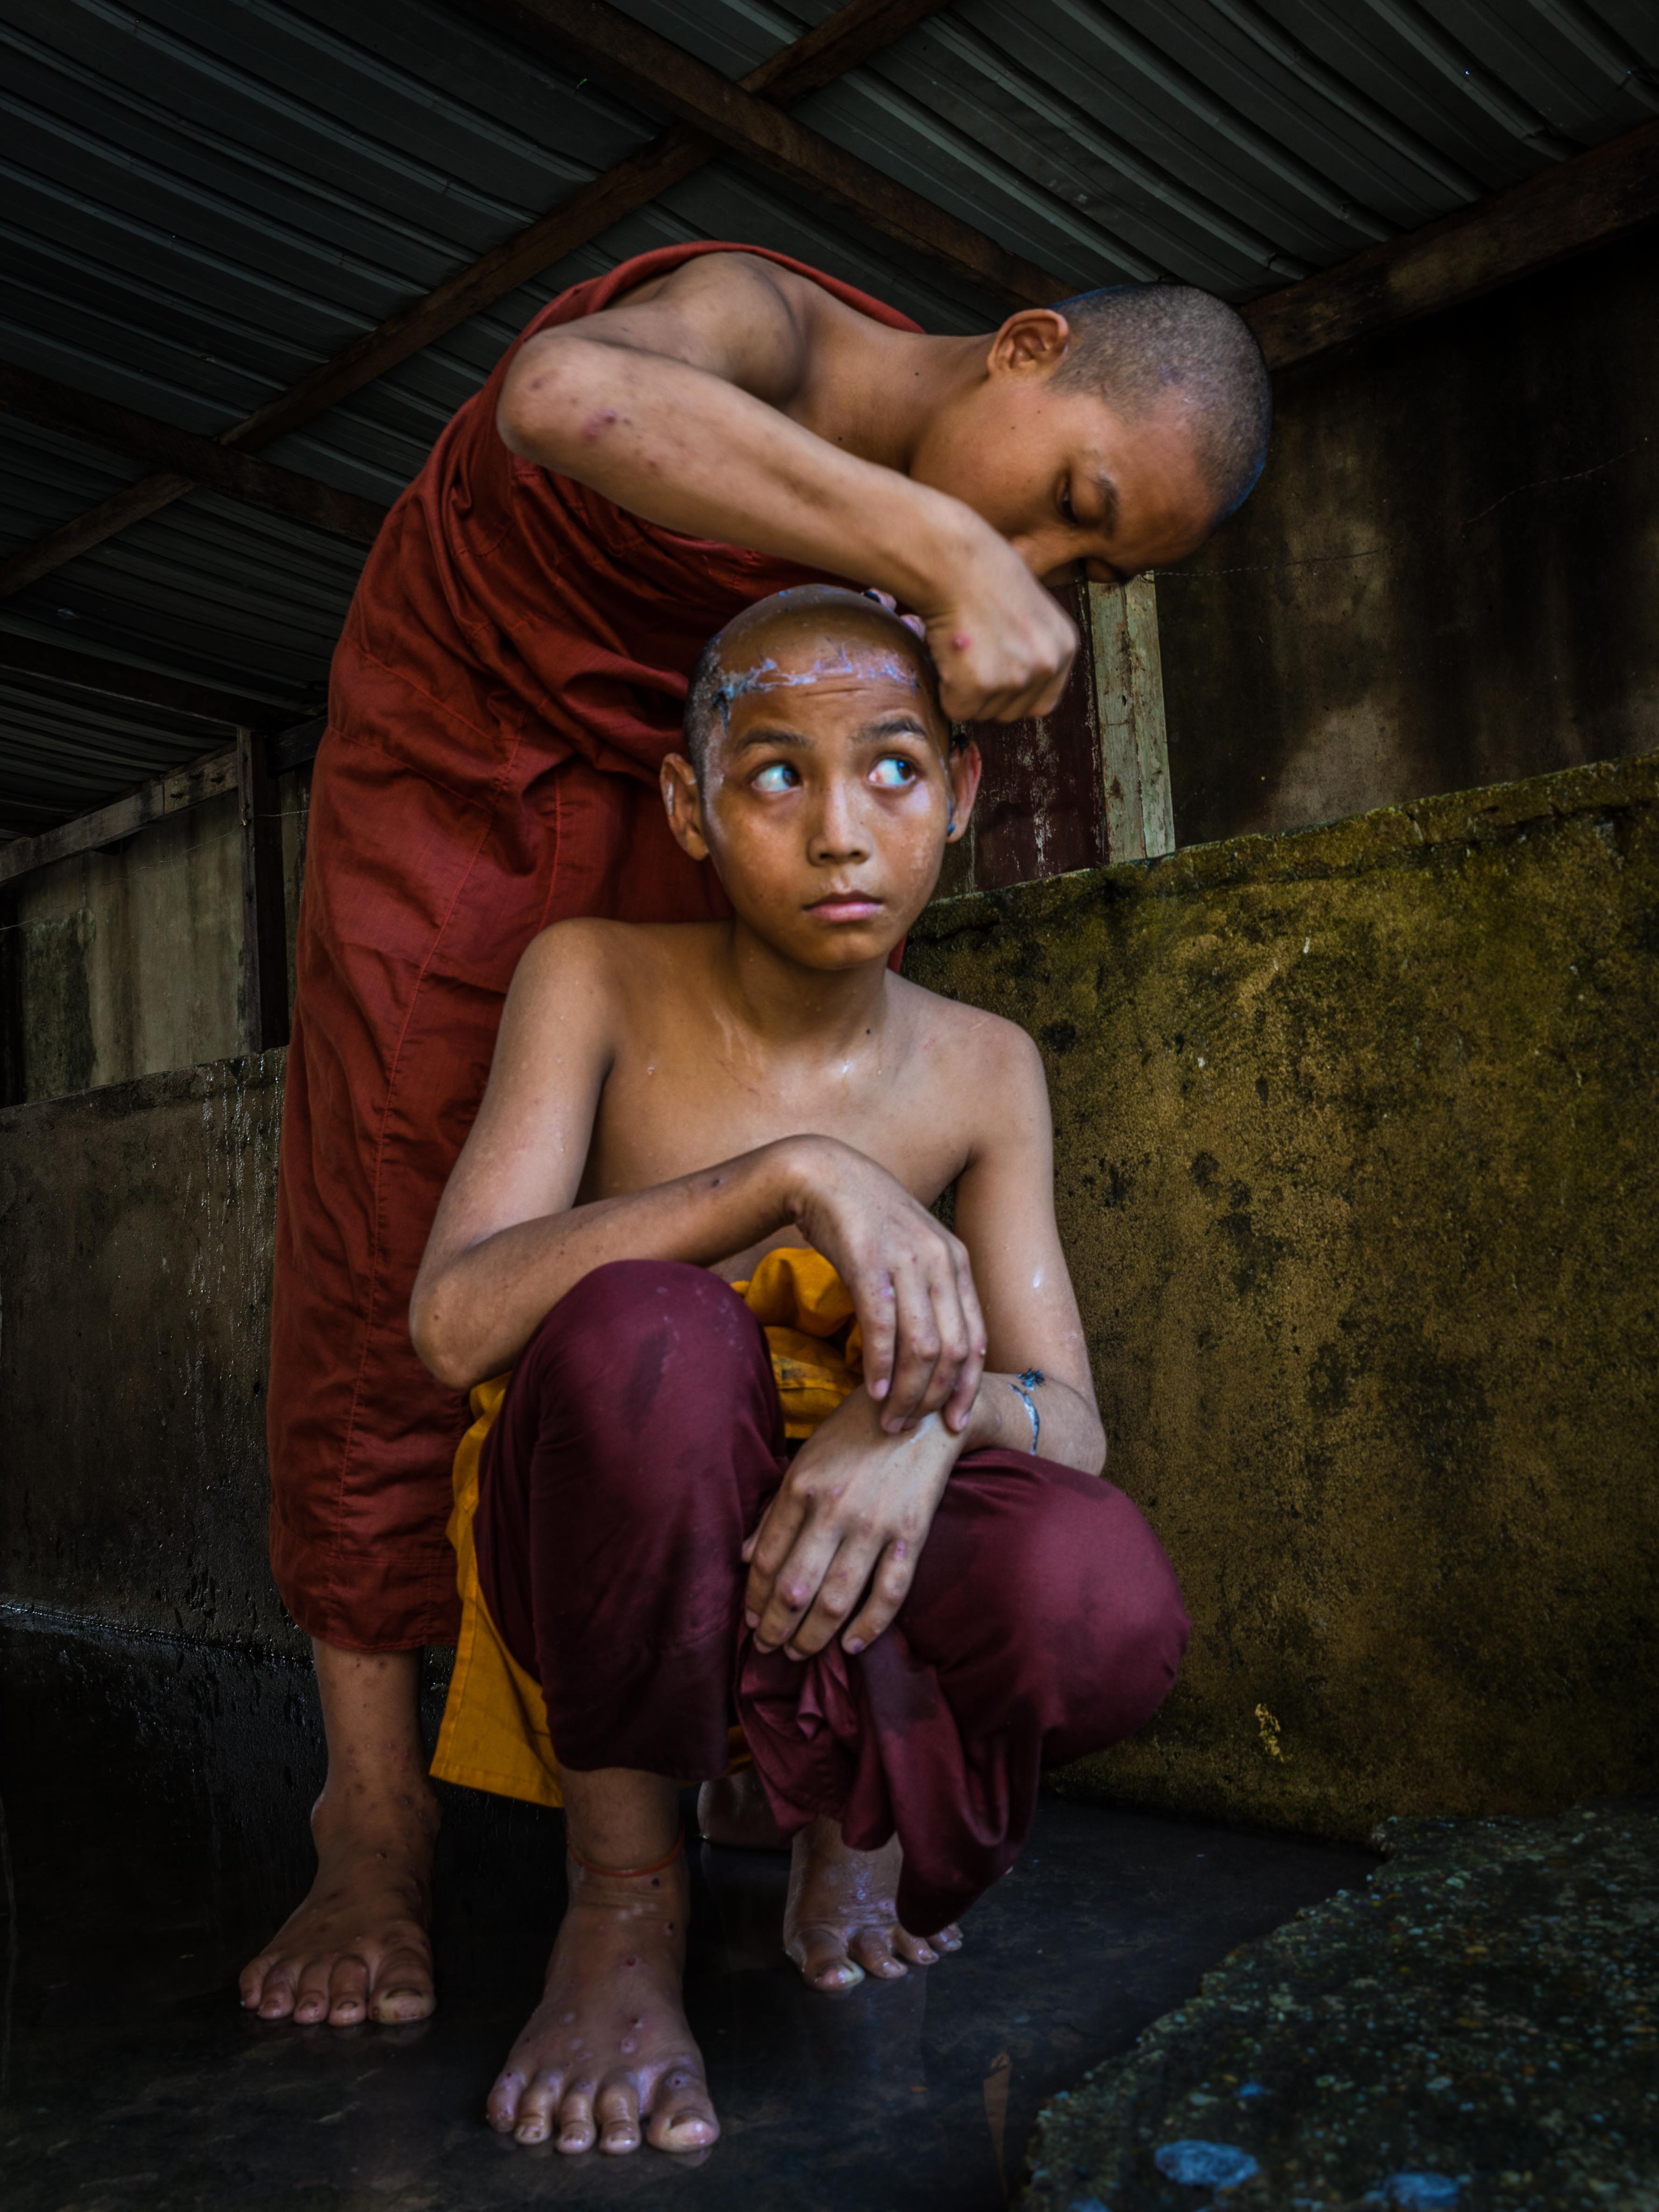 shaving, novice monk